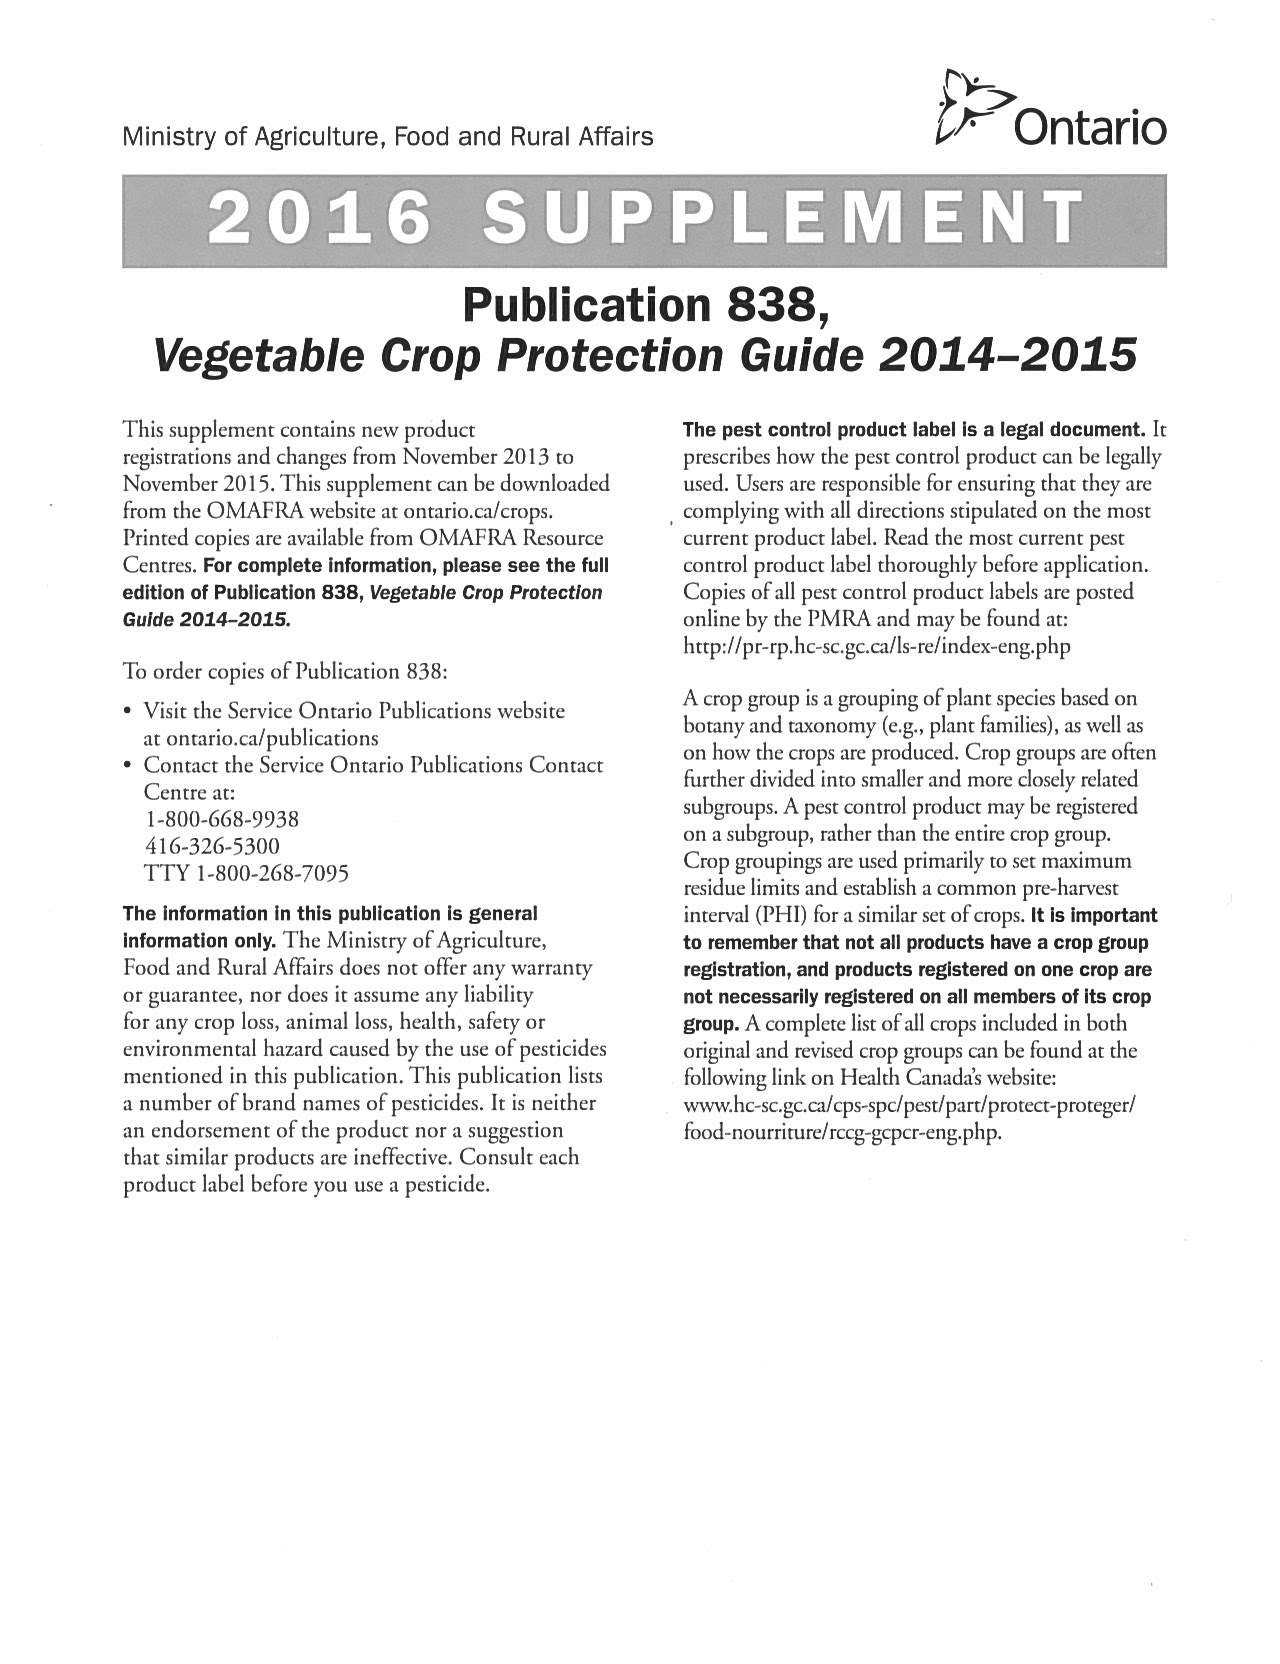 2016 Supplement - OMAFRA Vegetable Crop Protection Guide (Pub. 838)